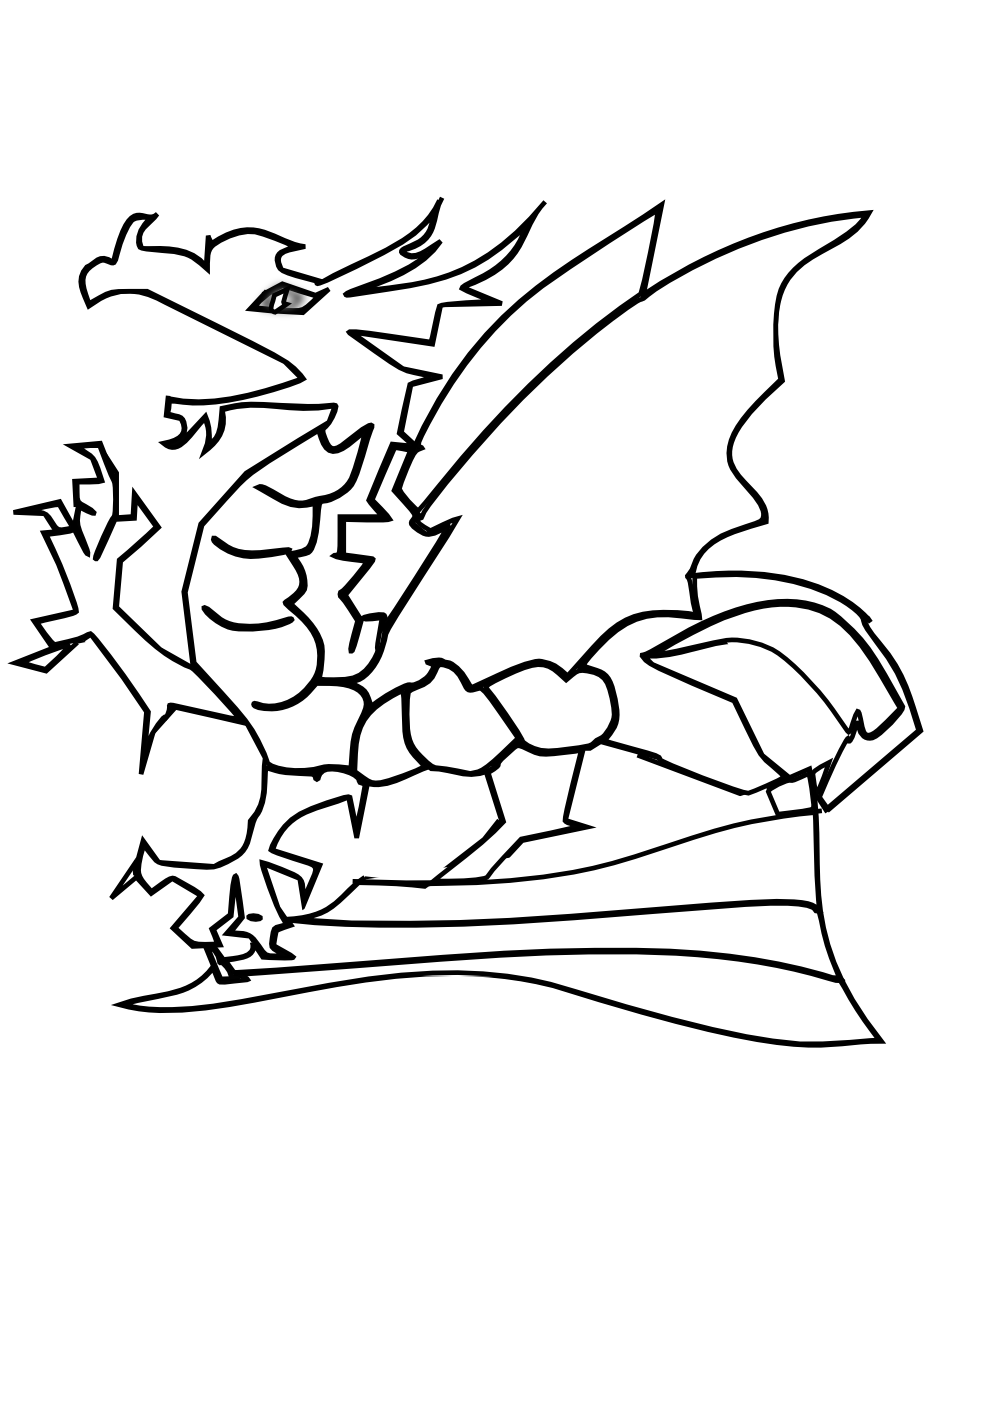 Baby-Dragon-Coloring-Pages.png (999×1413) | ART | Pinterest